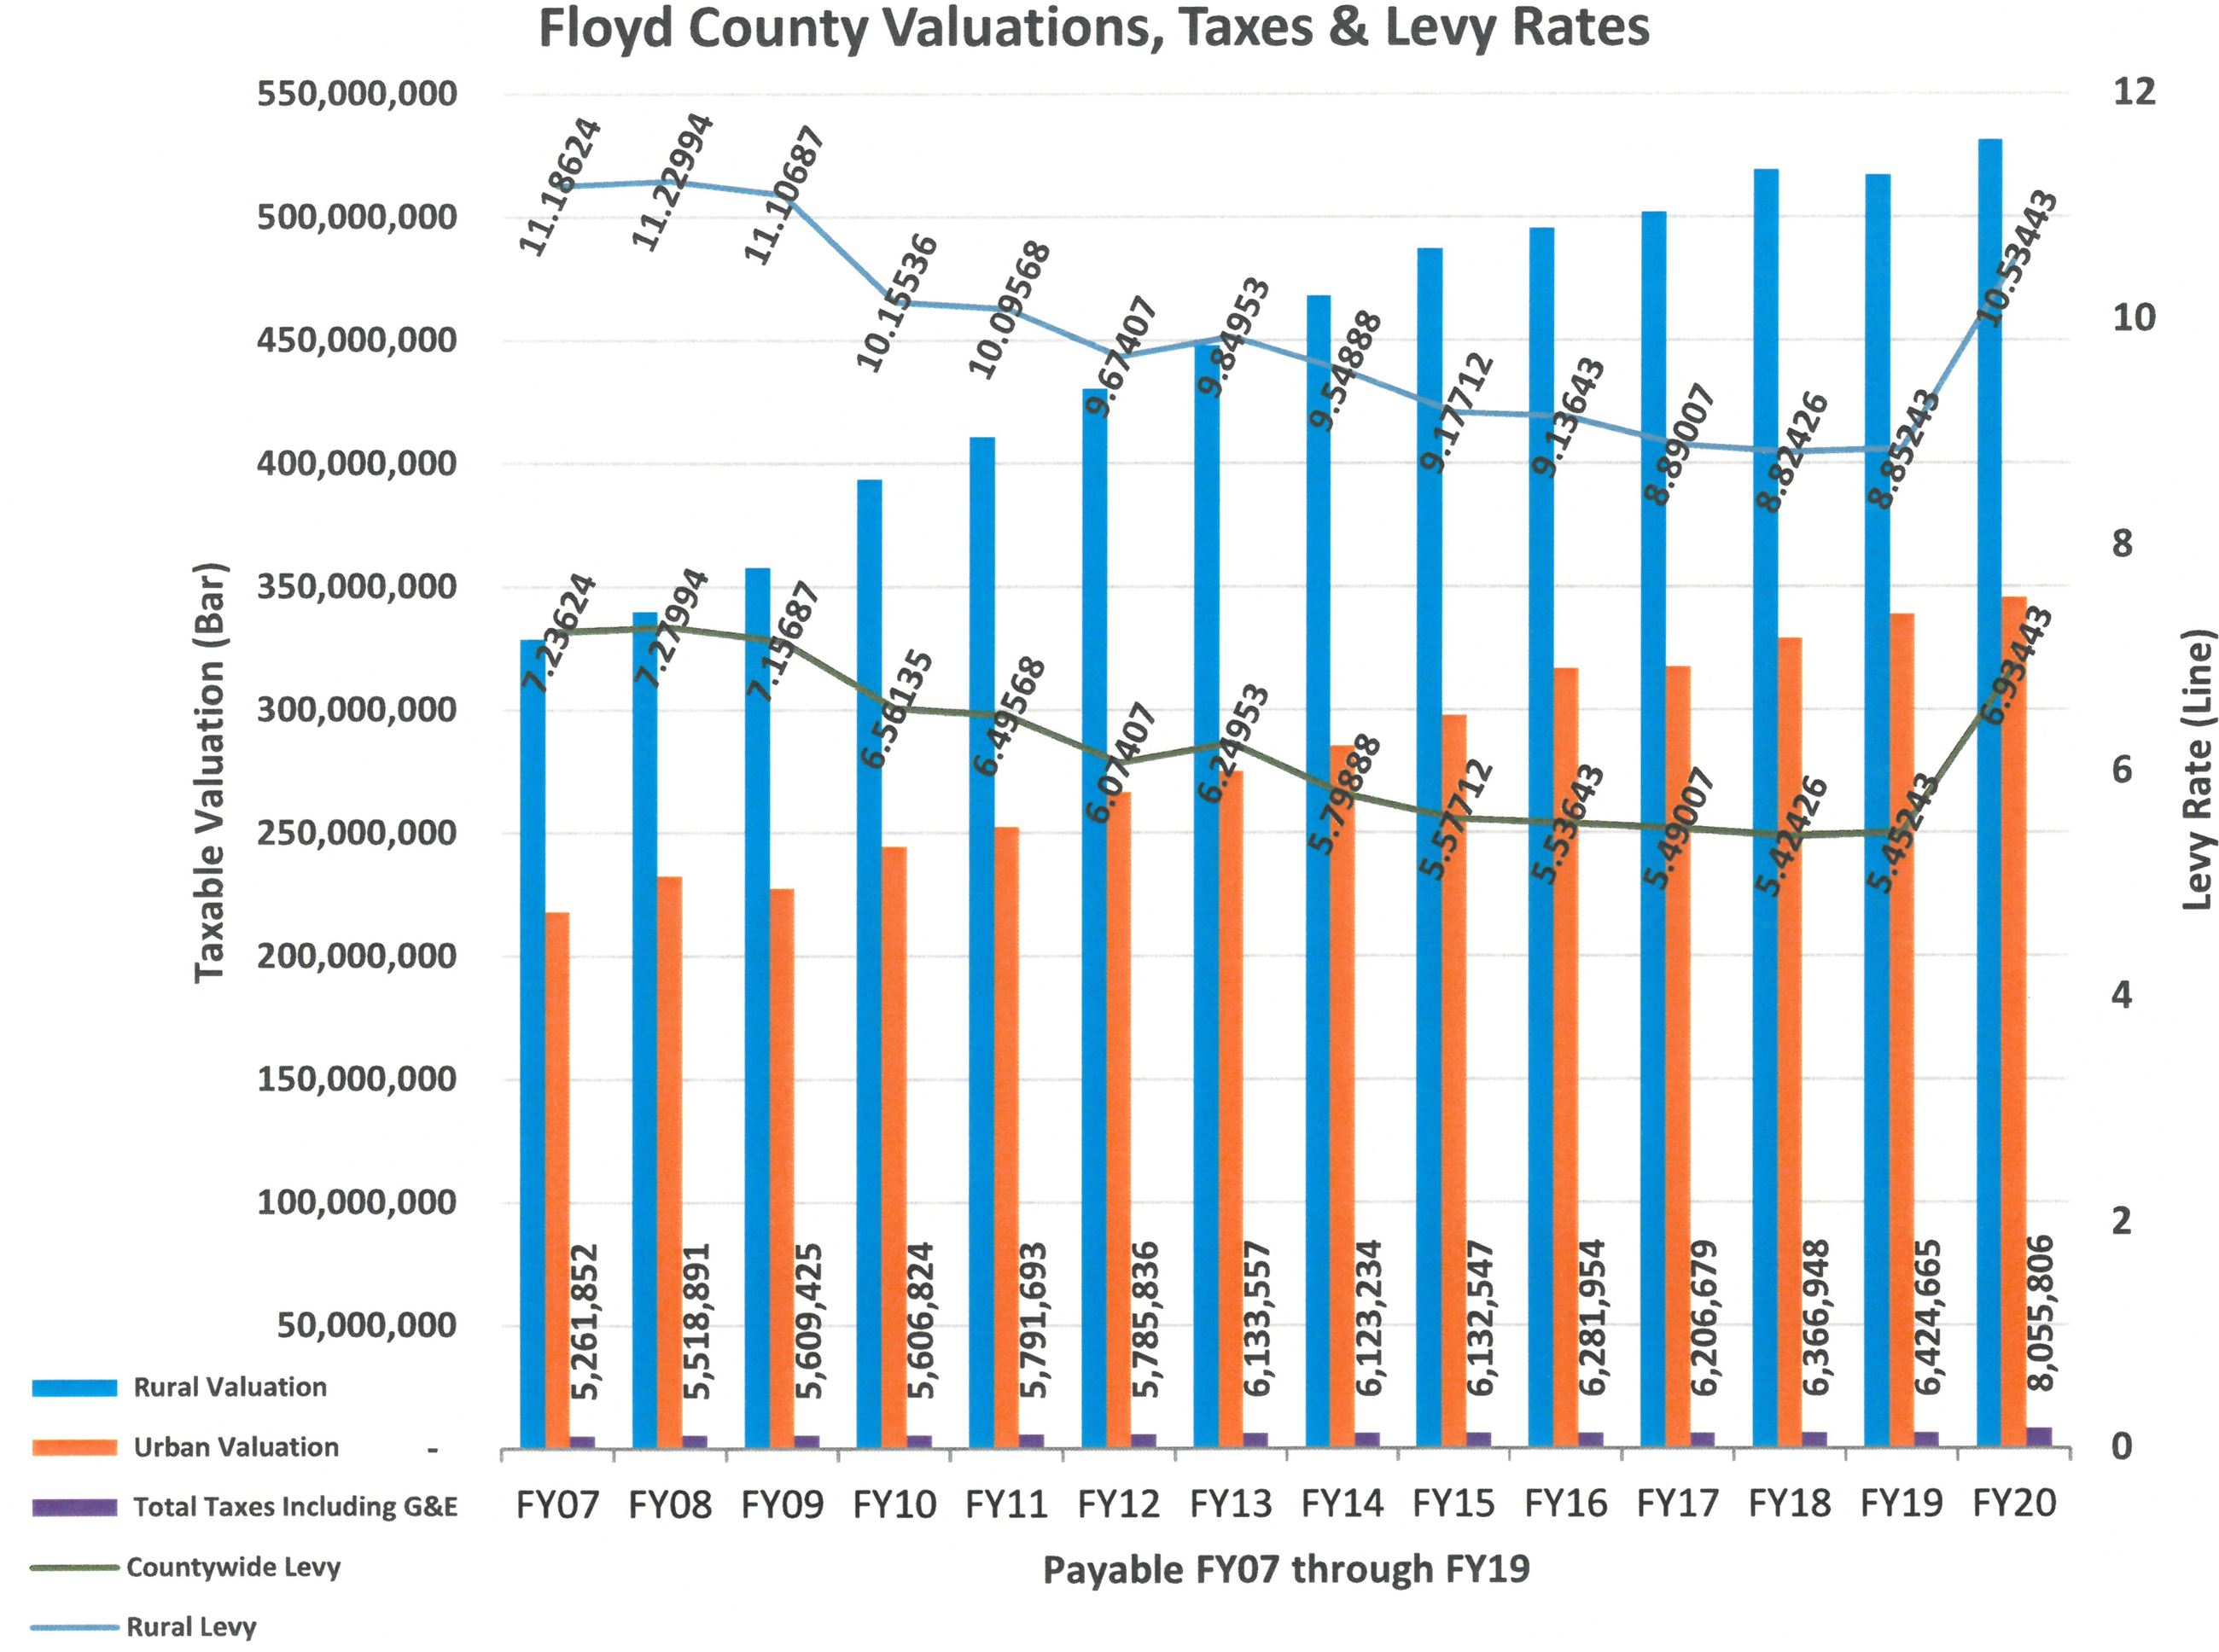 FY20 Valuations-Taxes-Levy Rates